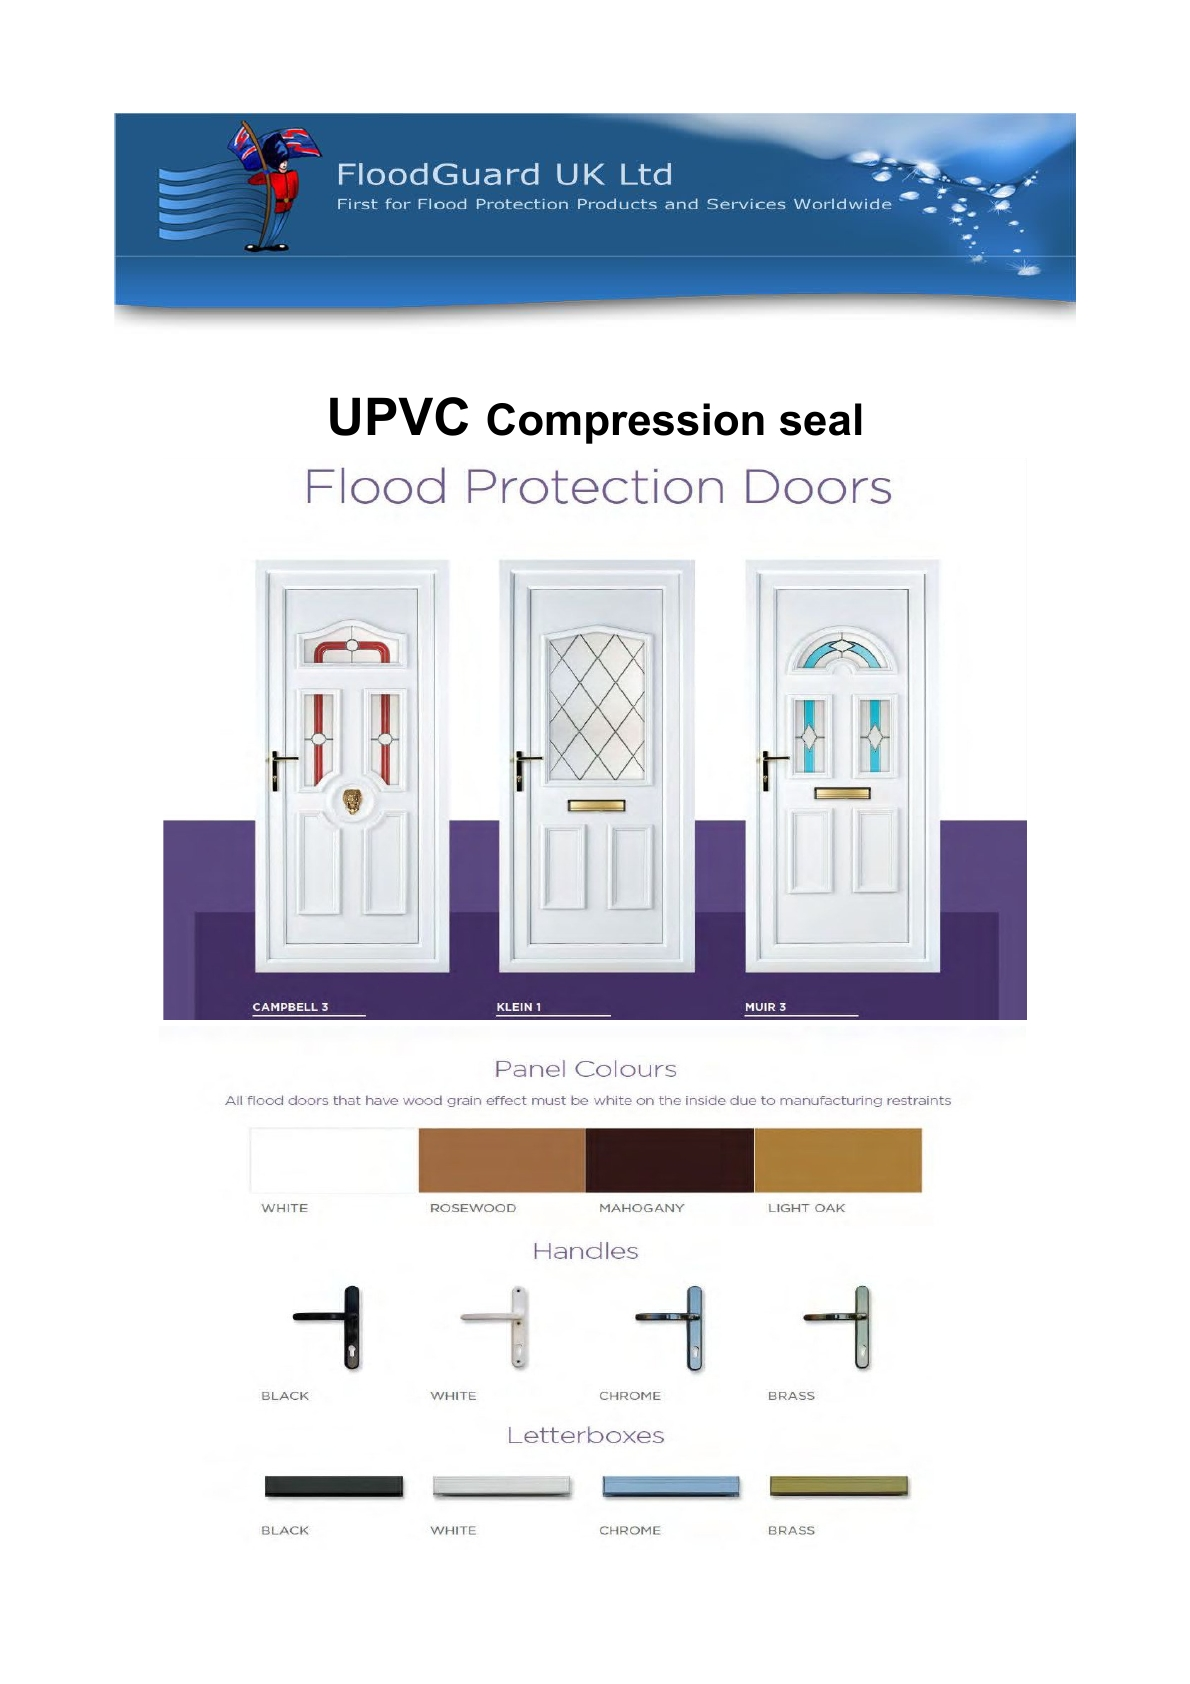 UPVC compression seal doors for flood protection across the UK from Flood Guard.